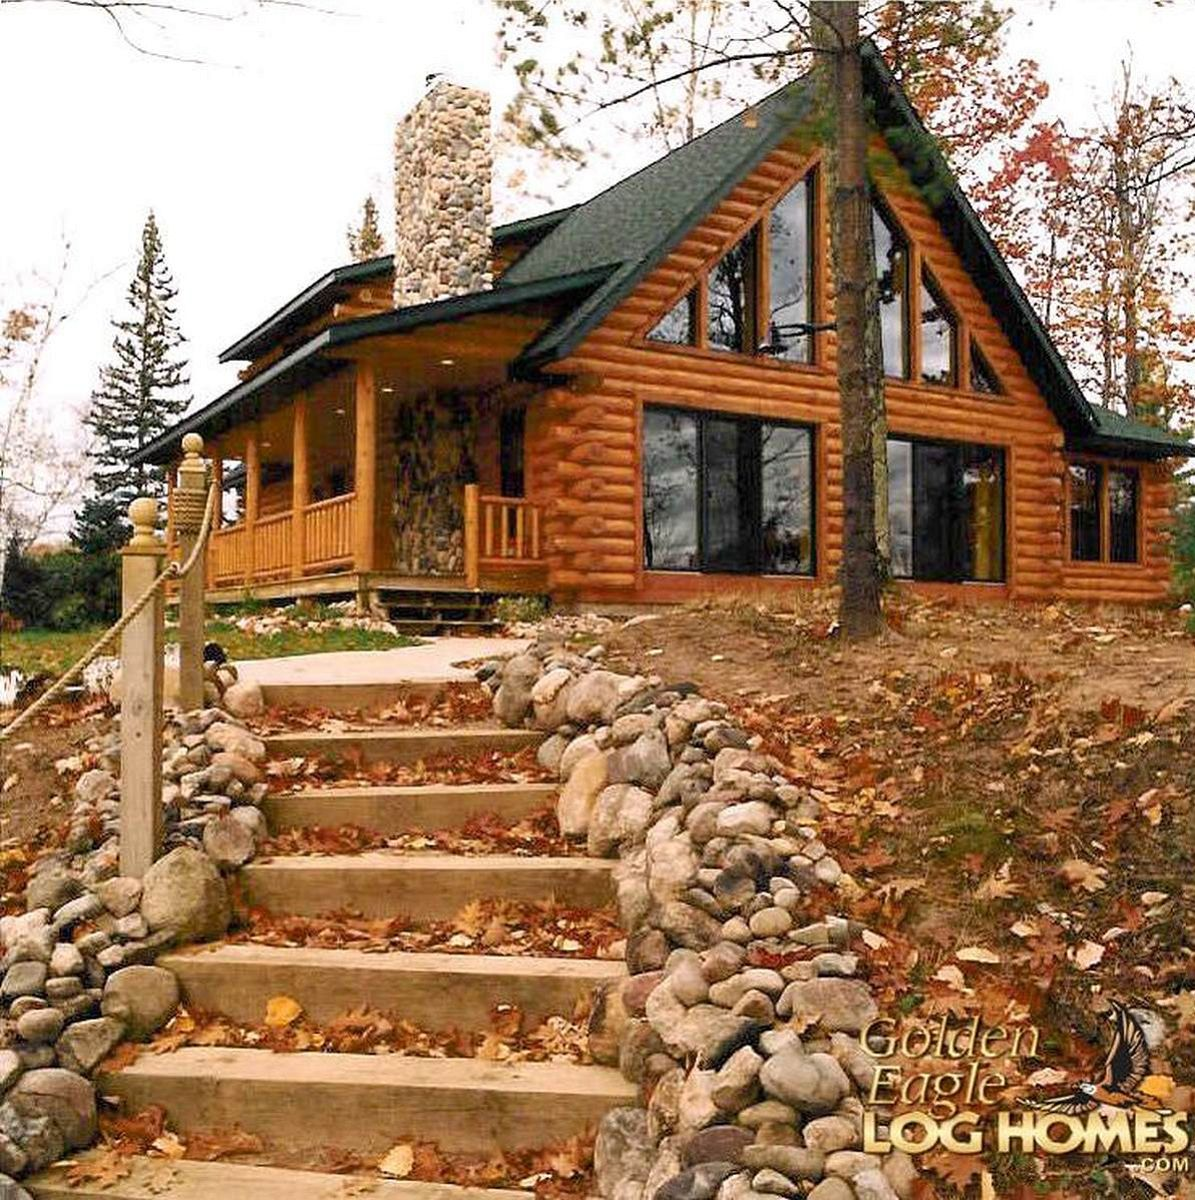 Log home by golden eagle log homes golden eagle log logs for Rustic cabin designs